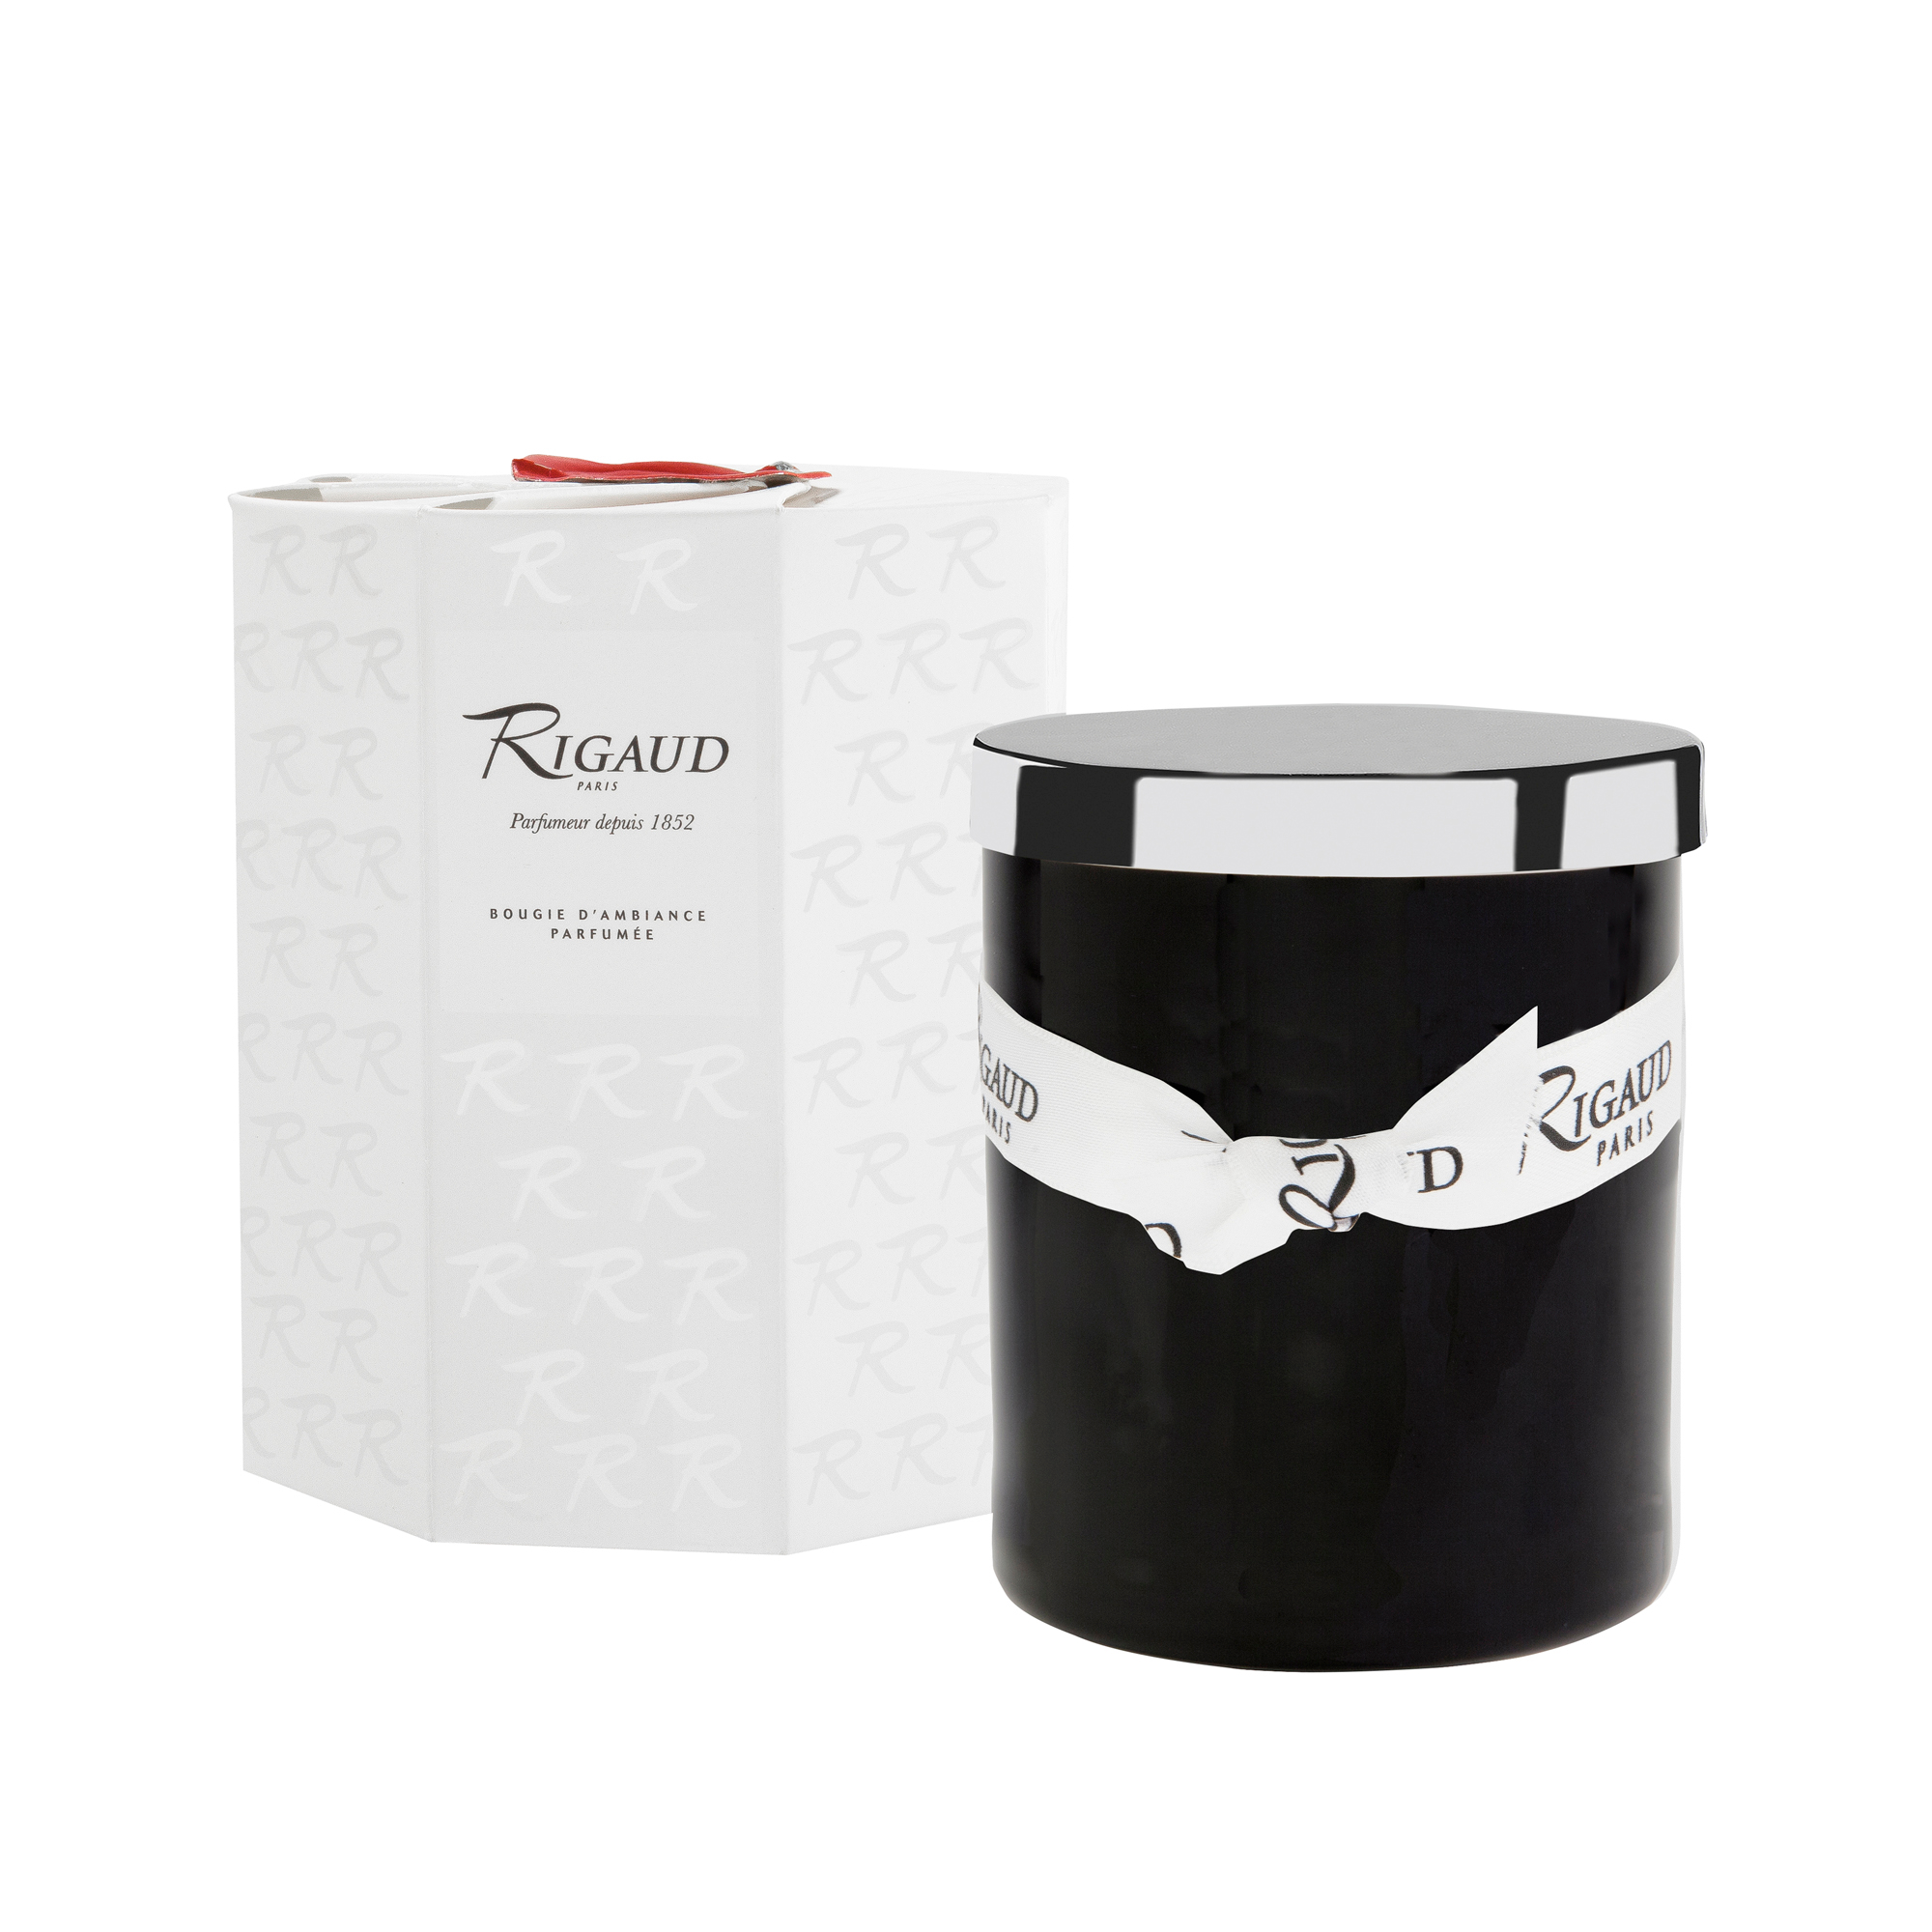 Rigaud Black Peche Mignon Candle, Medium